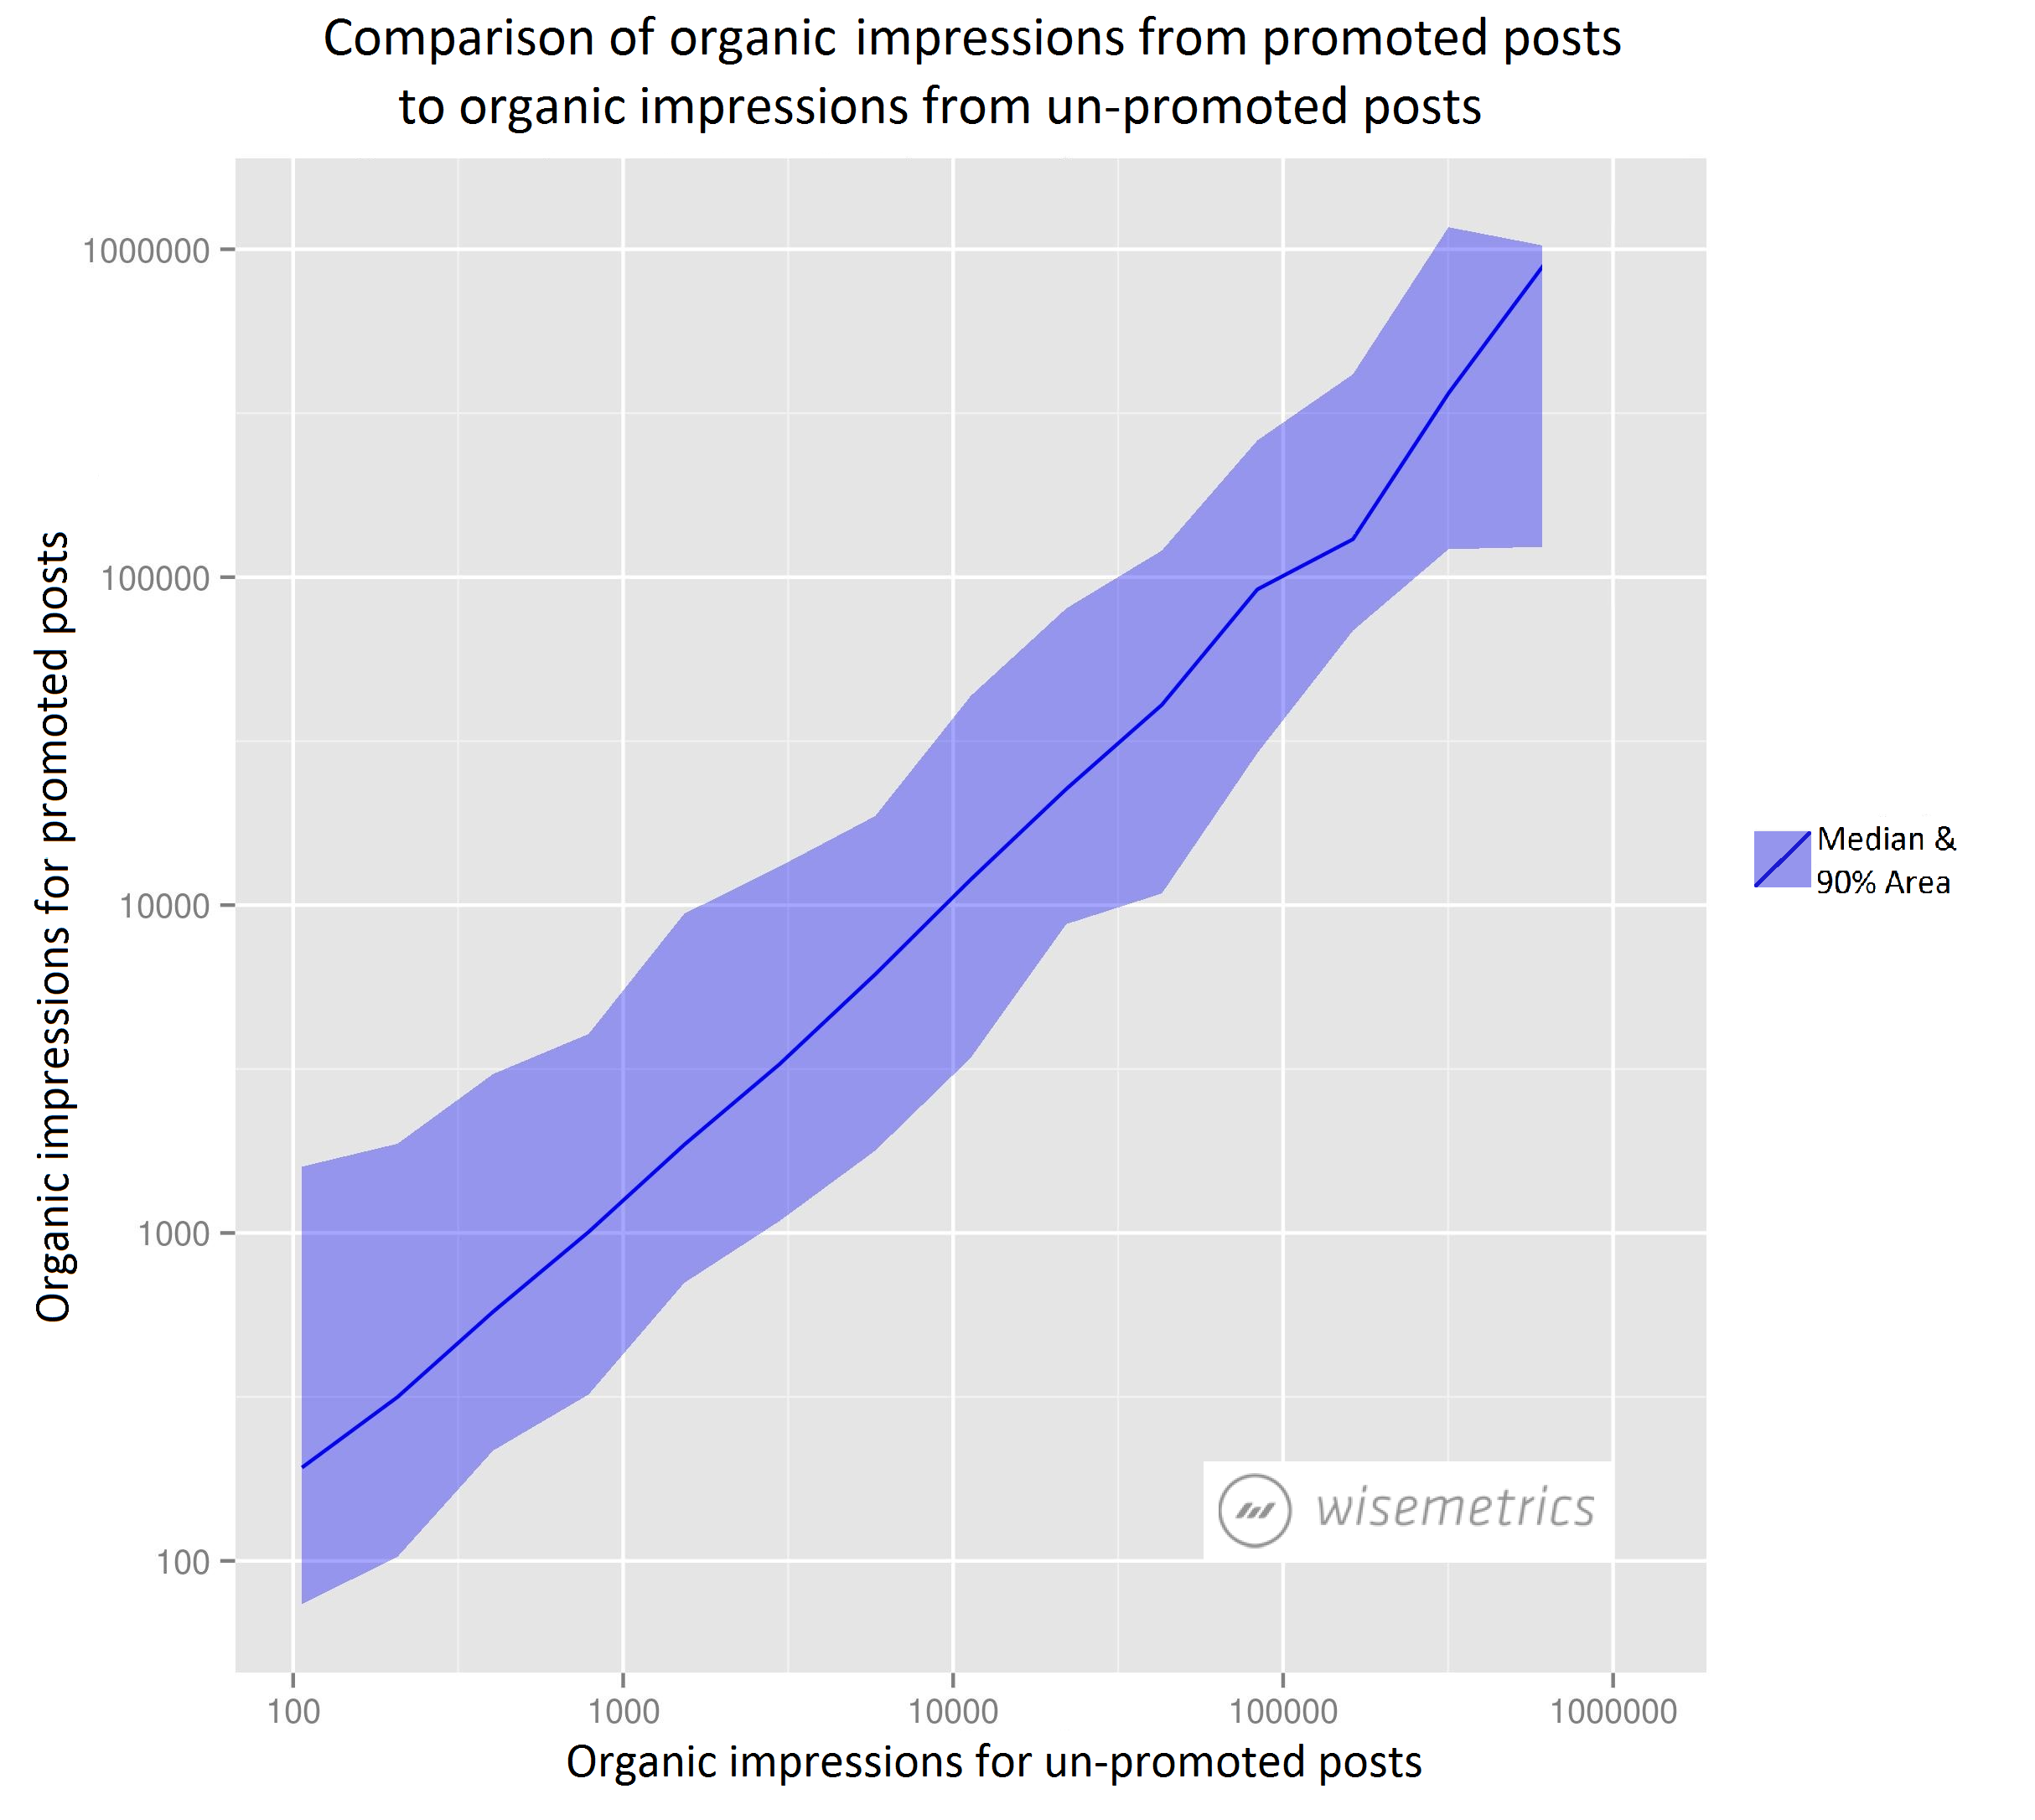 Comparison of organic impressions from promoted posts to organic impressions from un-promoted posts